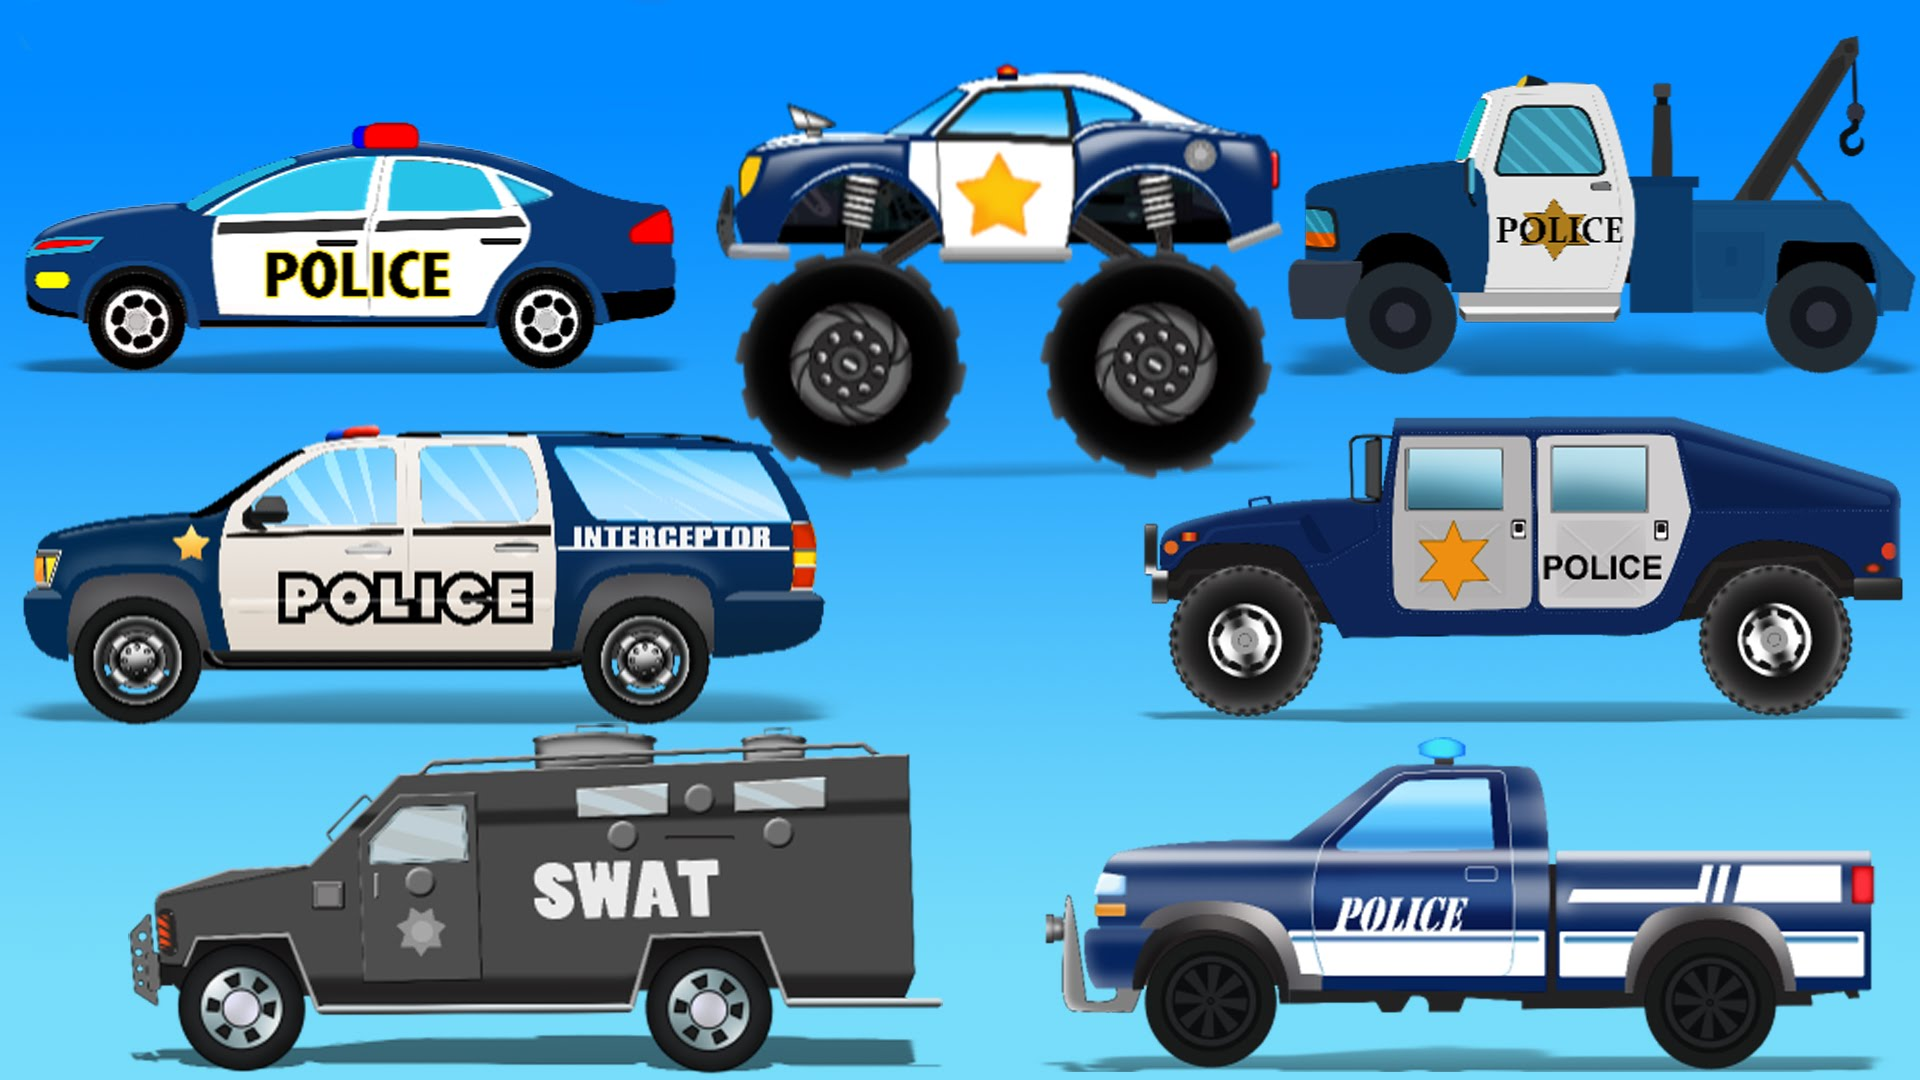 Street Vehicles | Police Cars | Toy Cars For Kids - YouTube